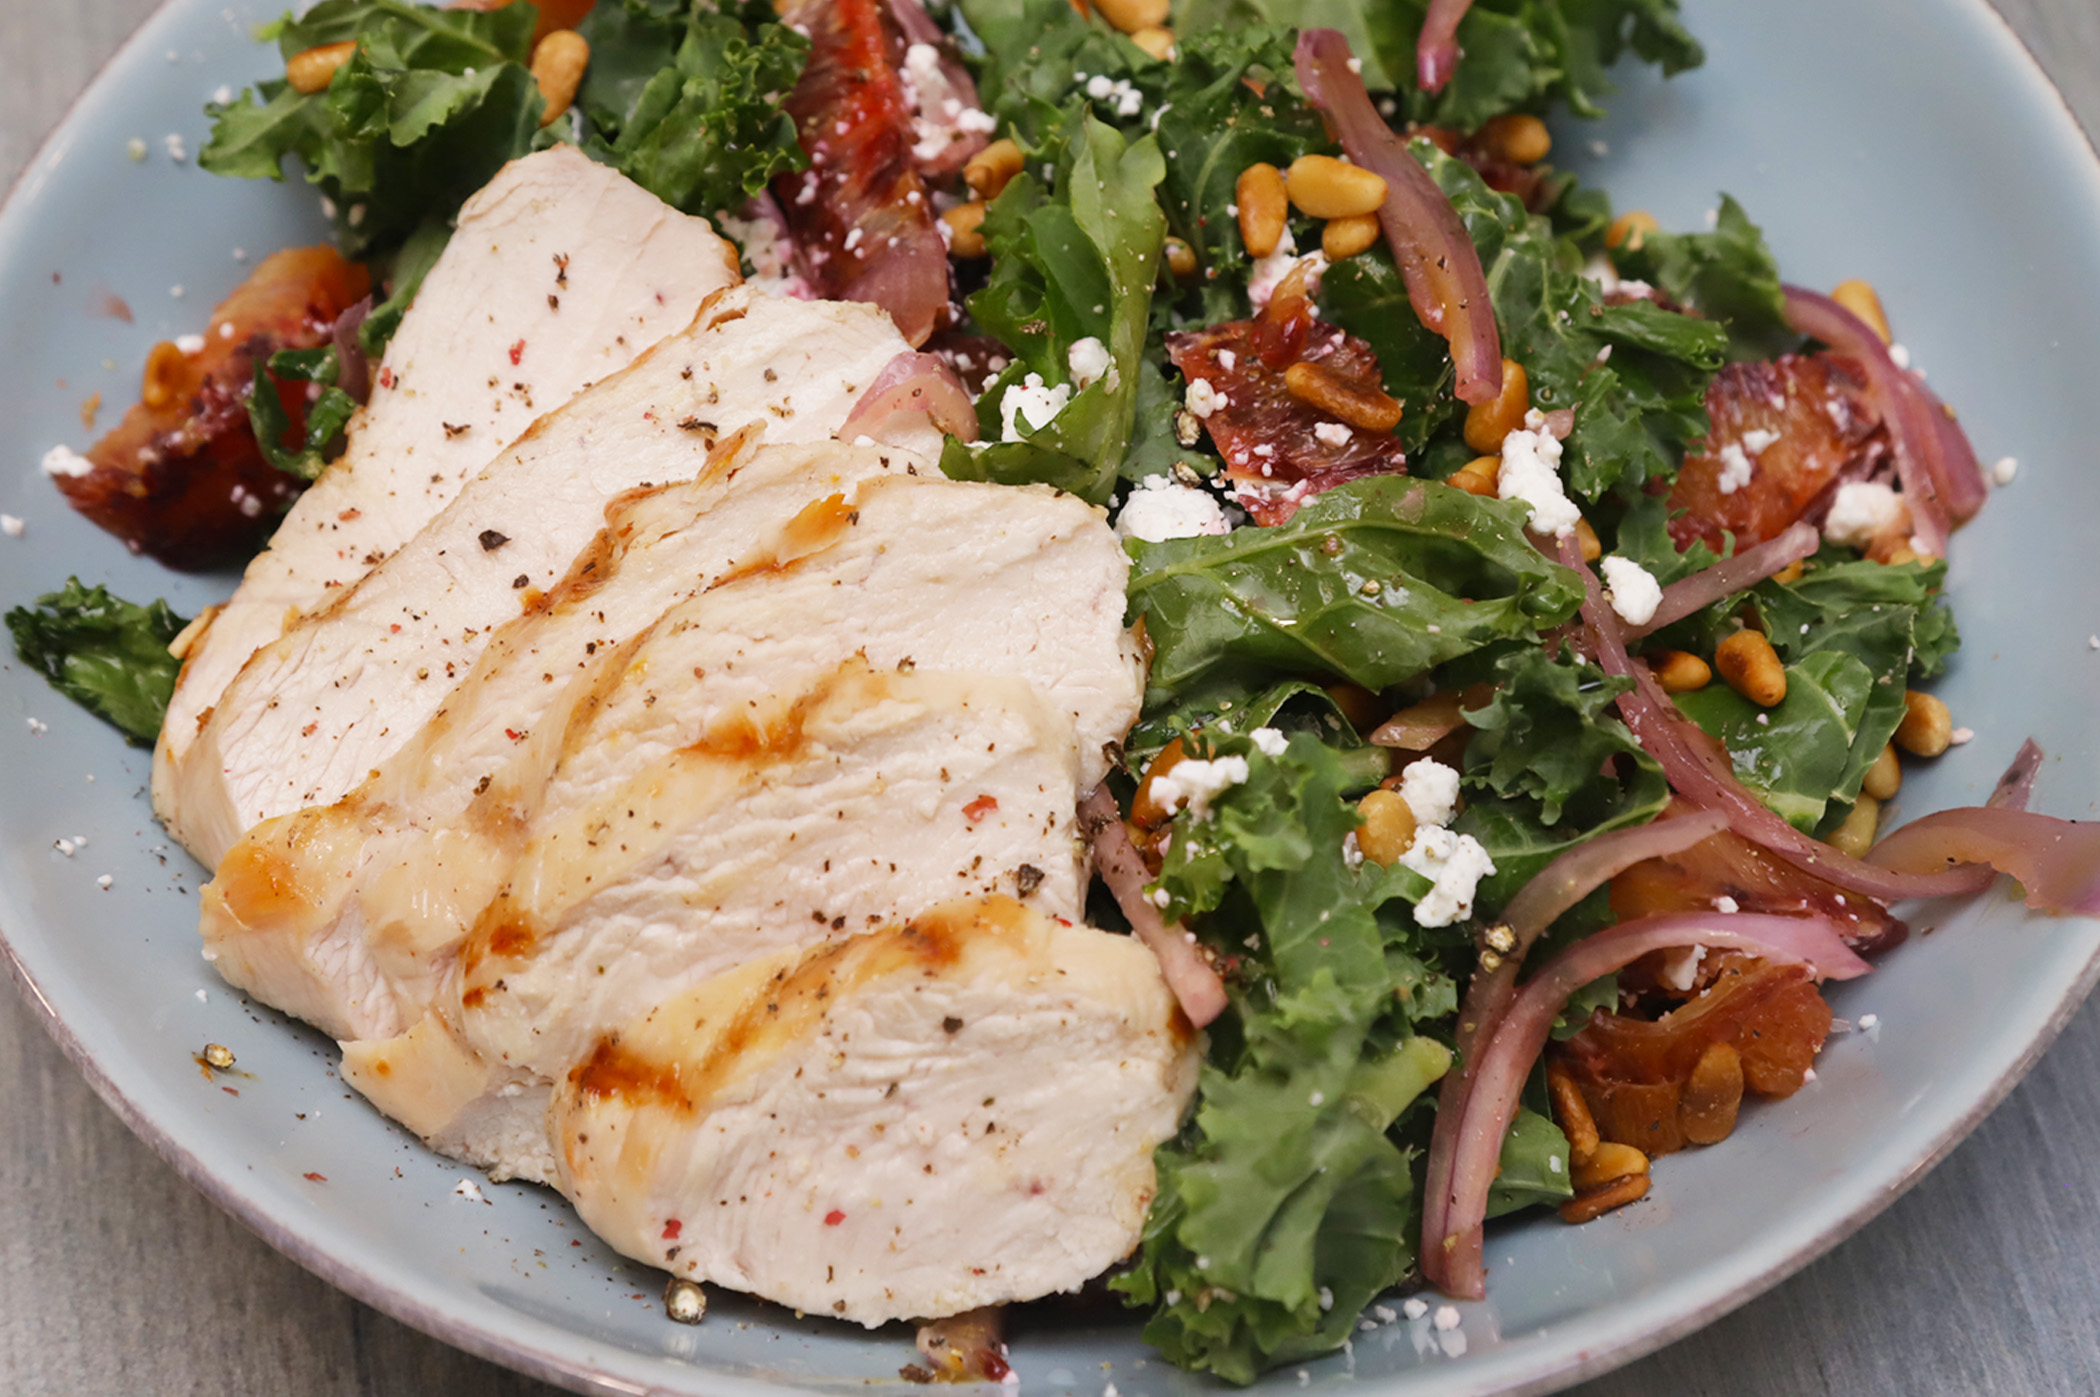 Easy Kale Salad With Blood Oranges, Pine Nuts & Goat Cheese